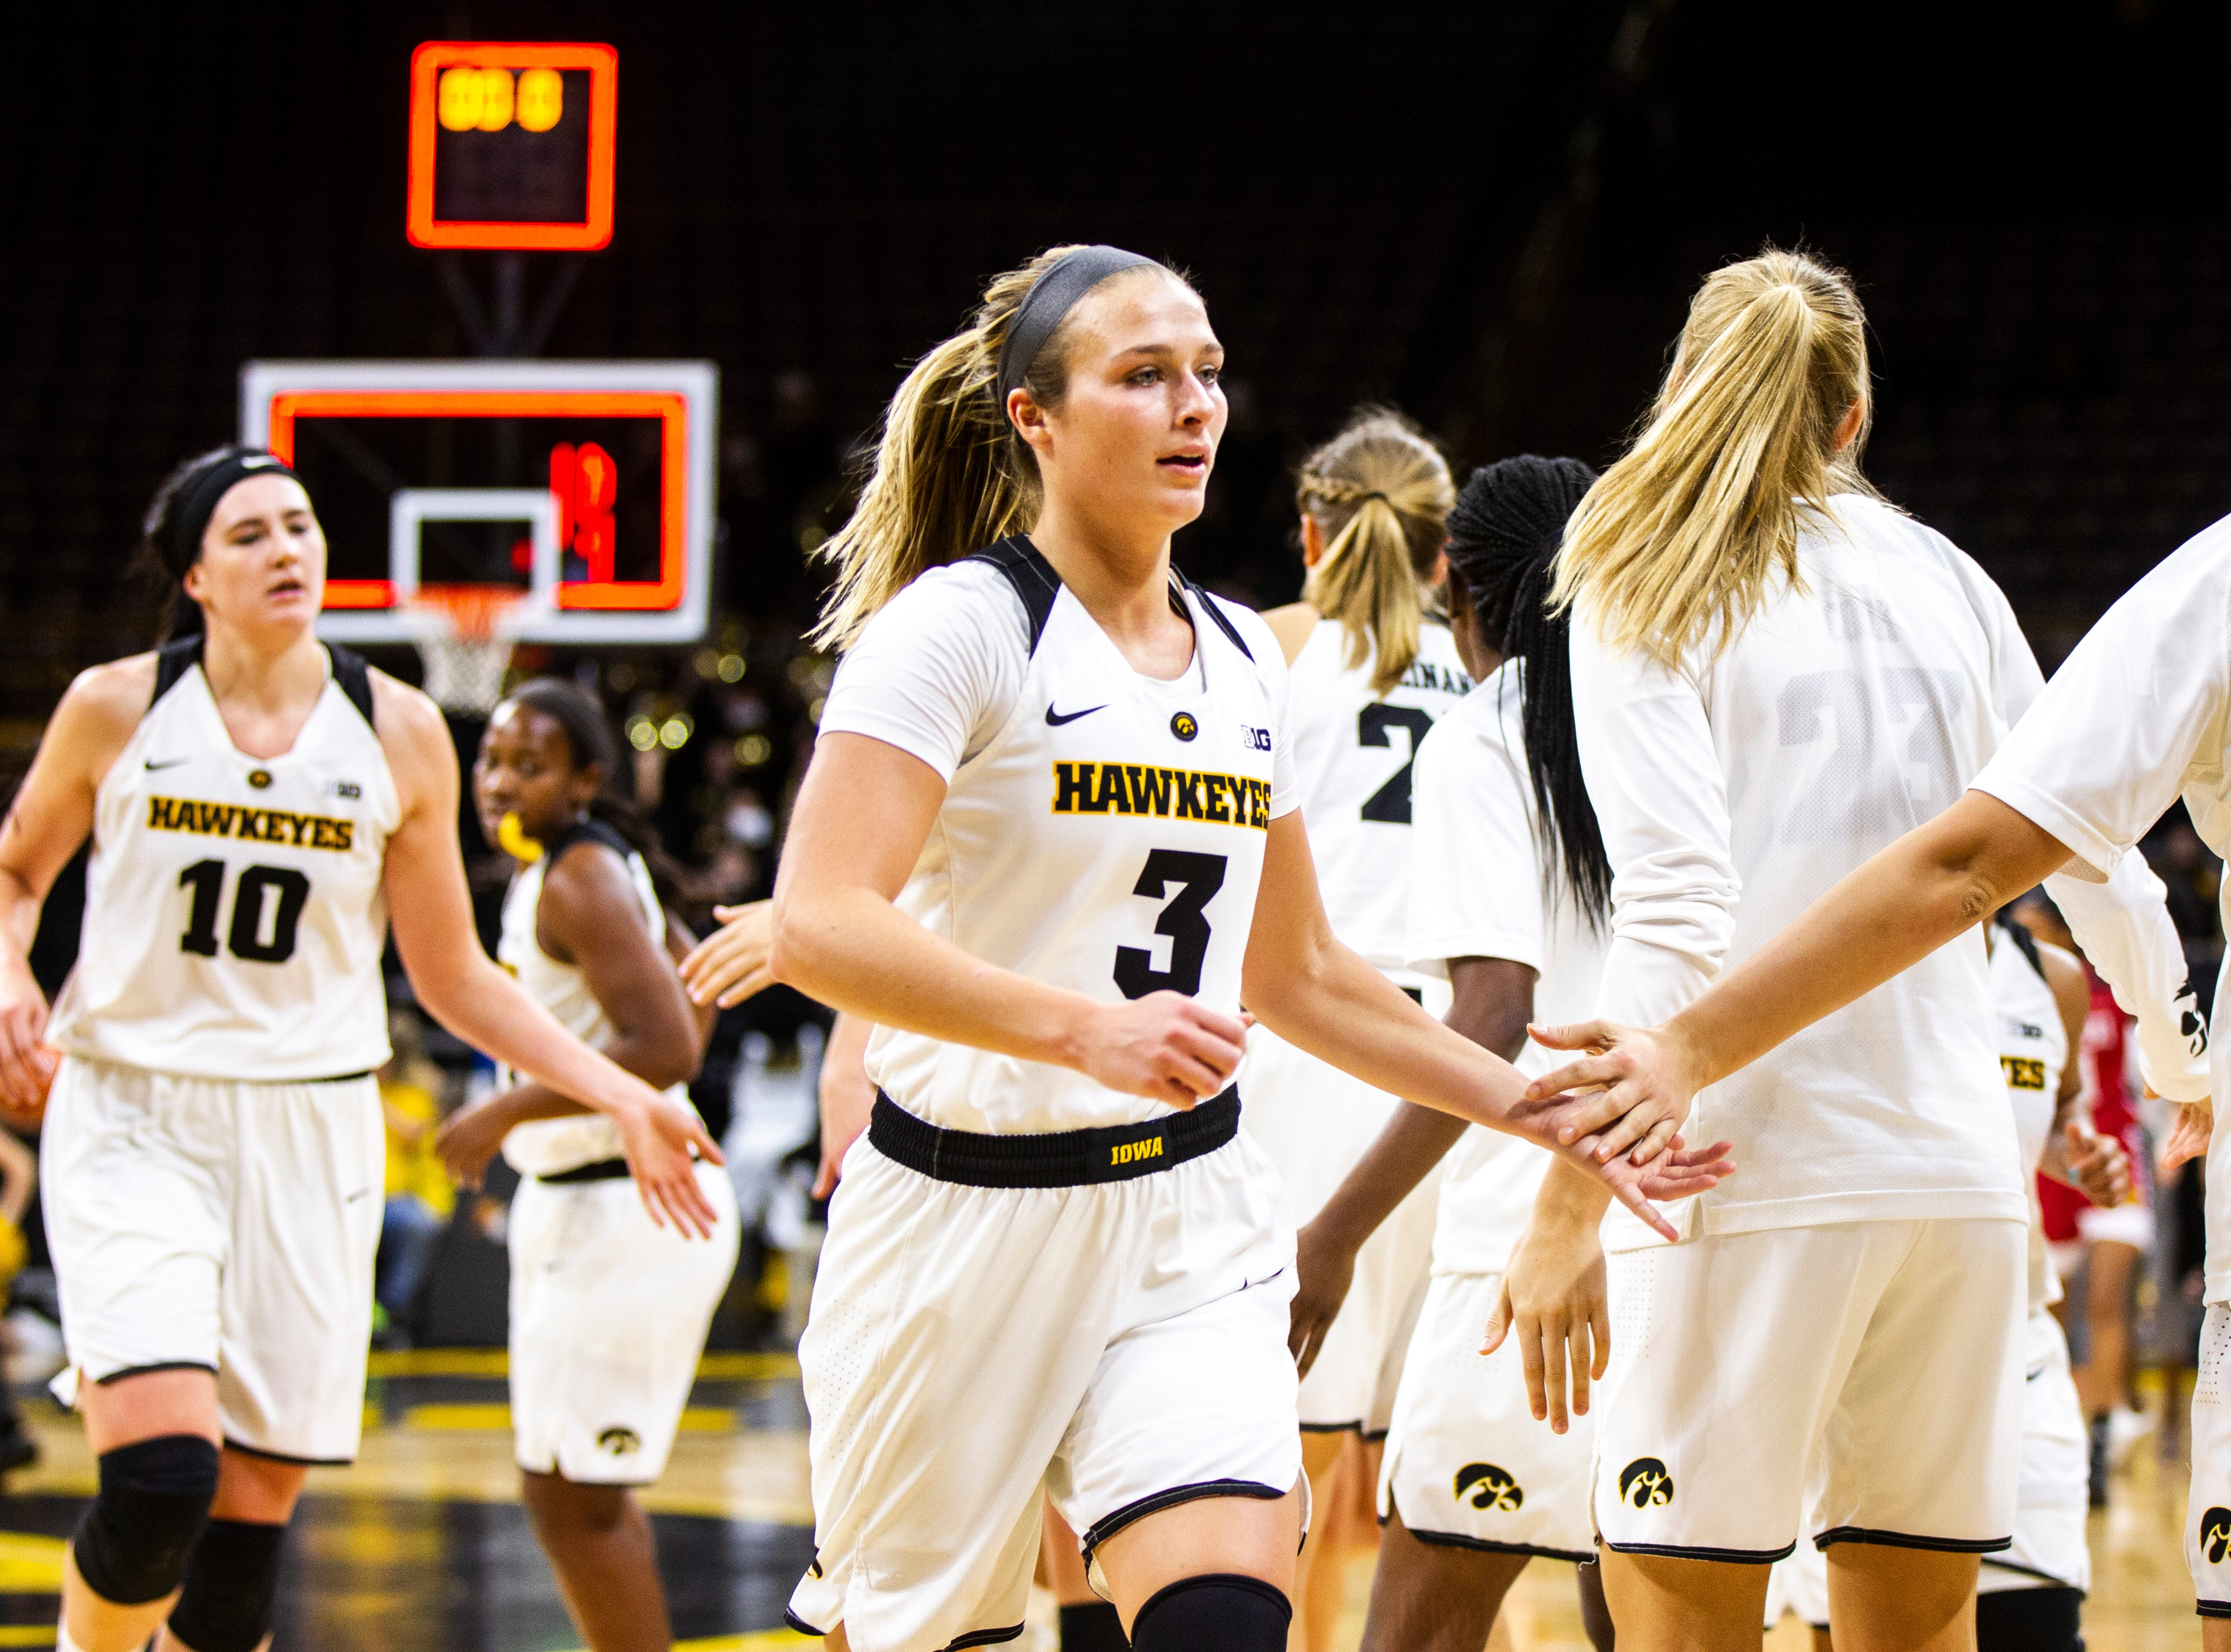 Iowa guard Makenzie Meyer (3) high-fives teammates heading into halftime after making a 3-point basket at the buzzer during a NCAA women's basketball game on Saturday, Dec. 8, 2018, at Carver-Hawkeye Arena in Iowa City.